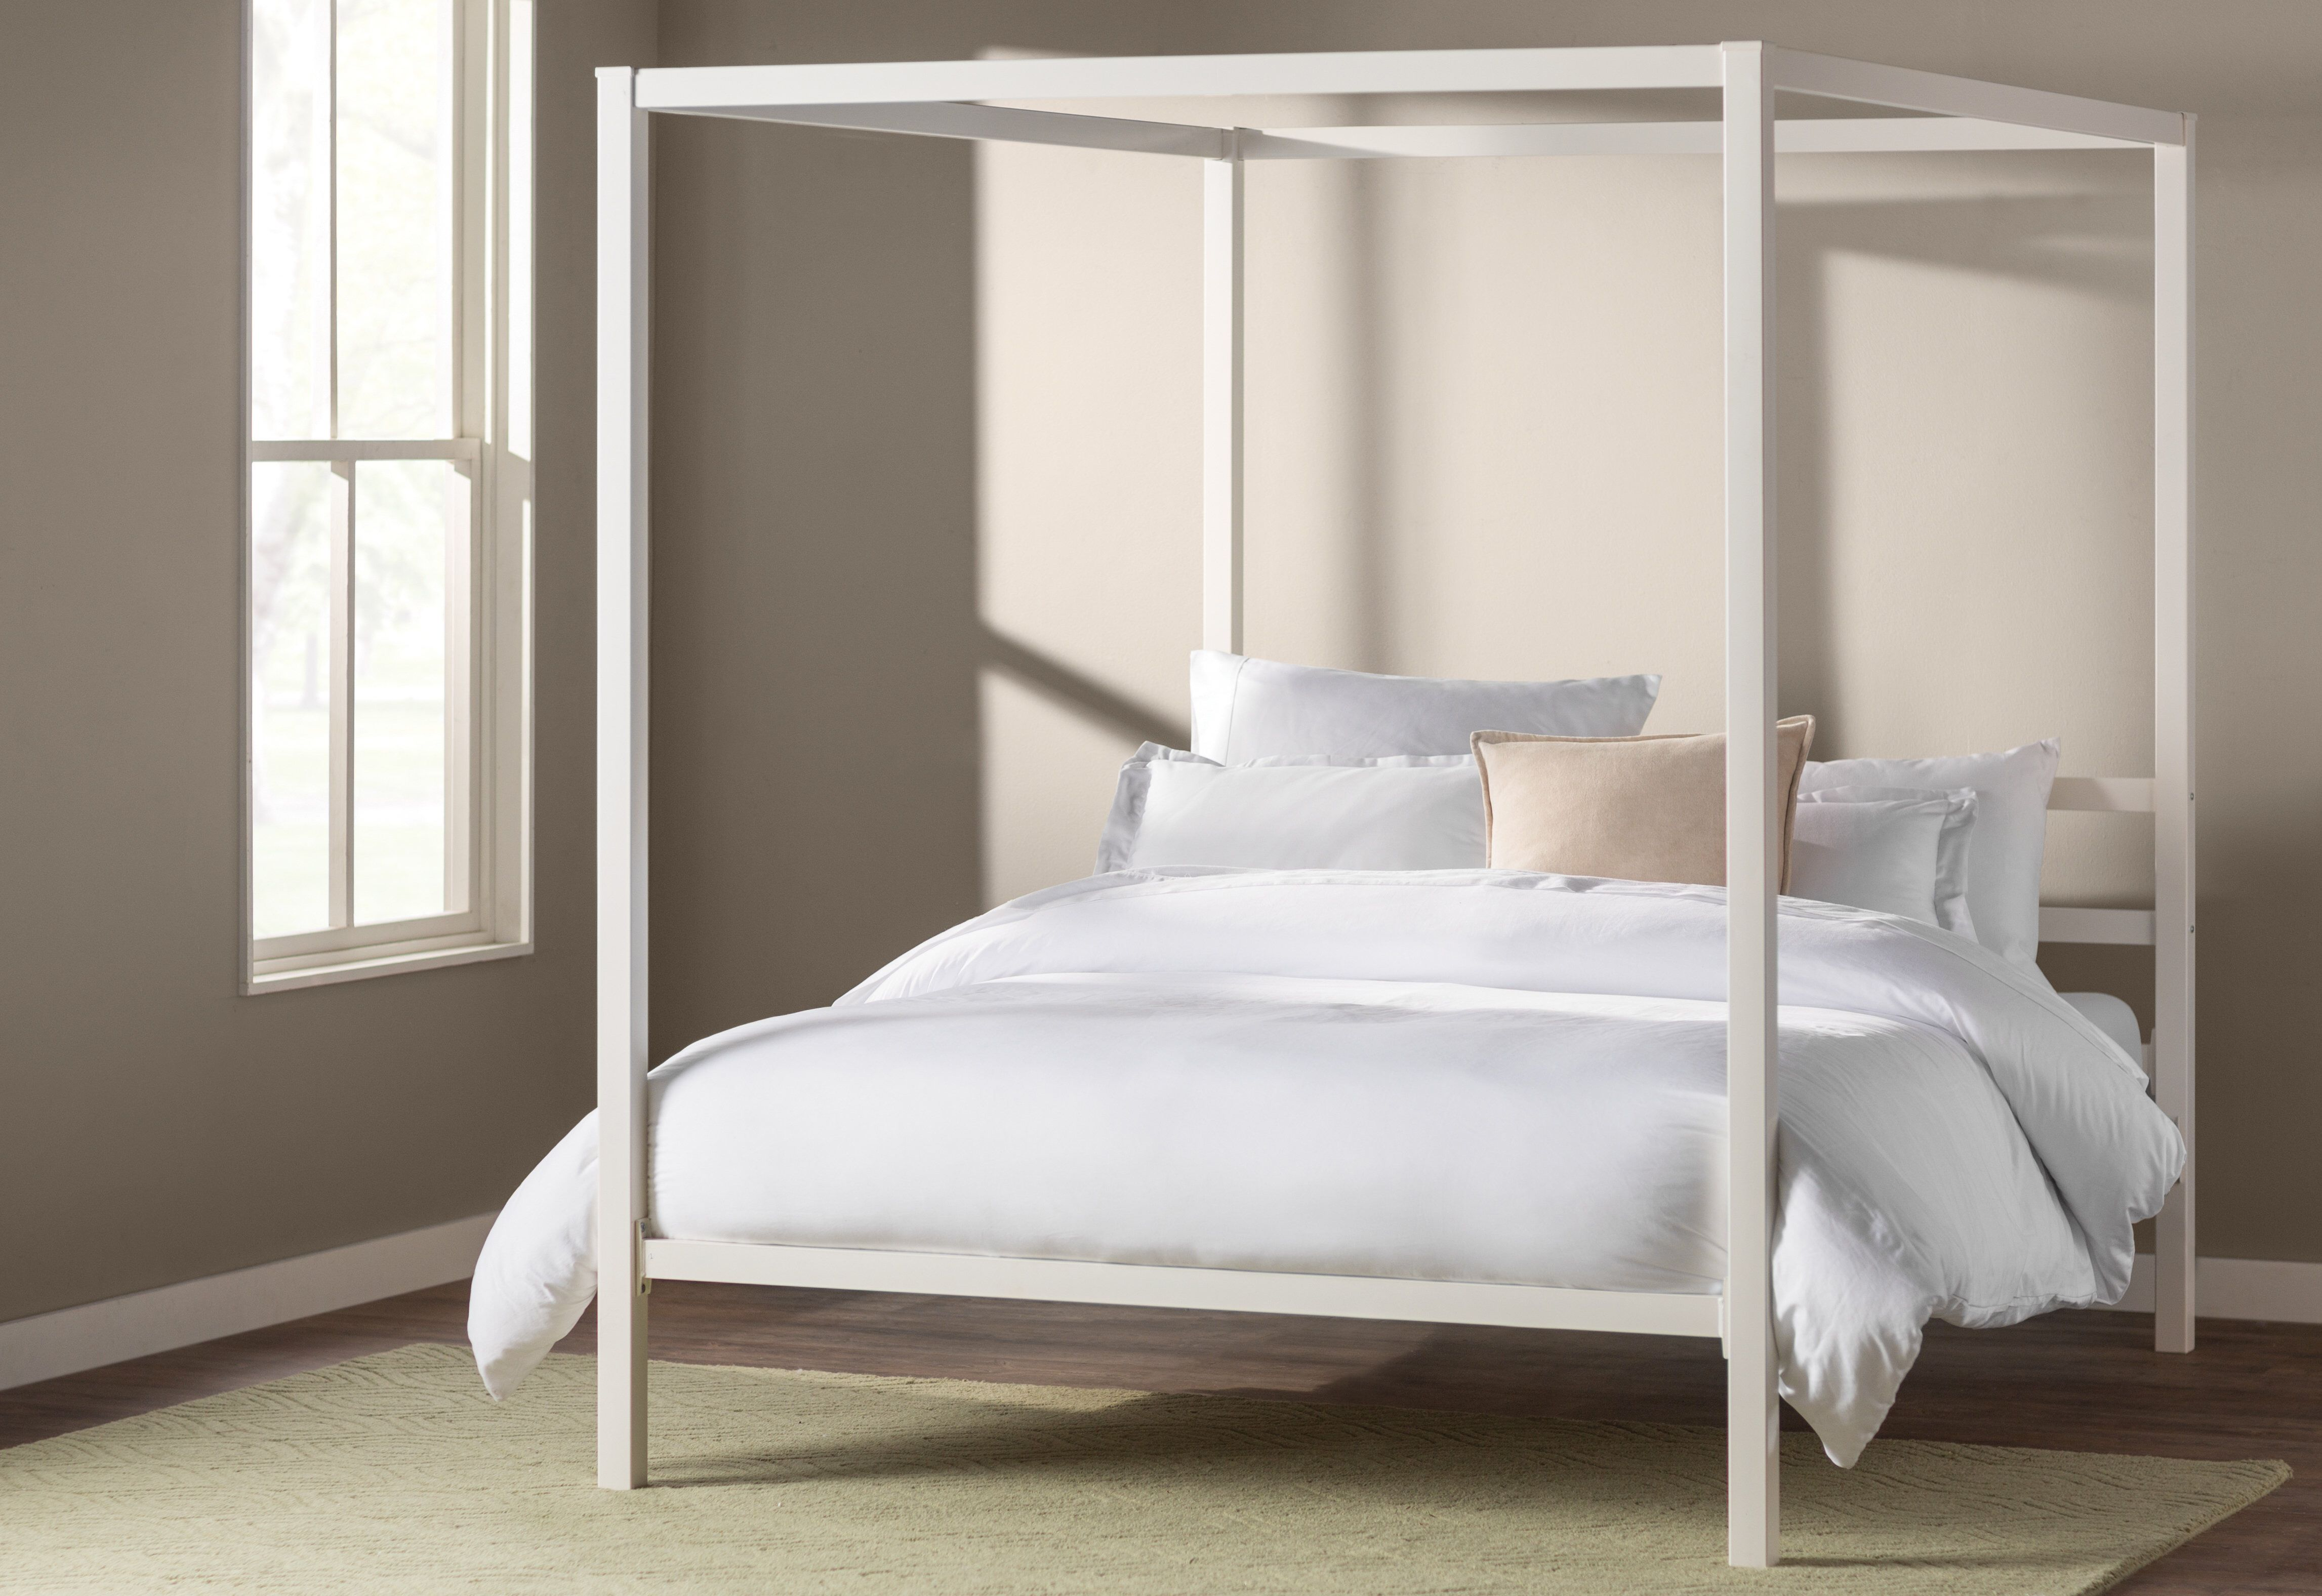 Stanley Canopy Bed Queen canopy bed, Twin canopy bed